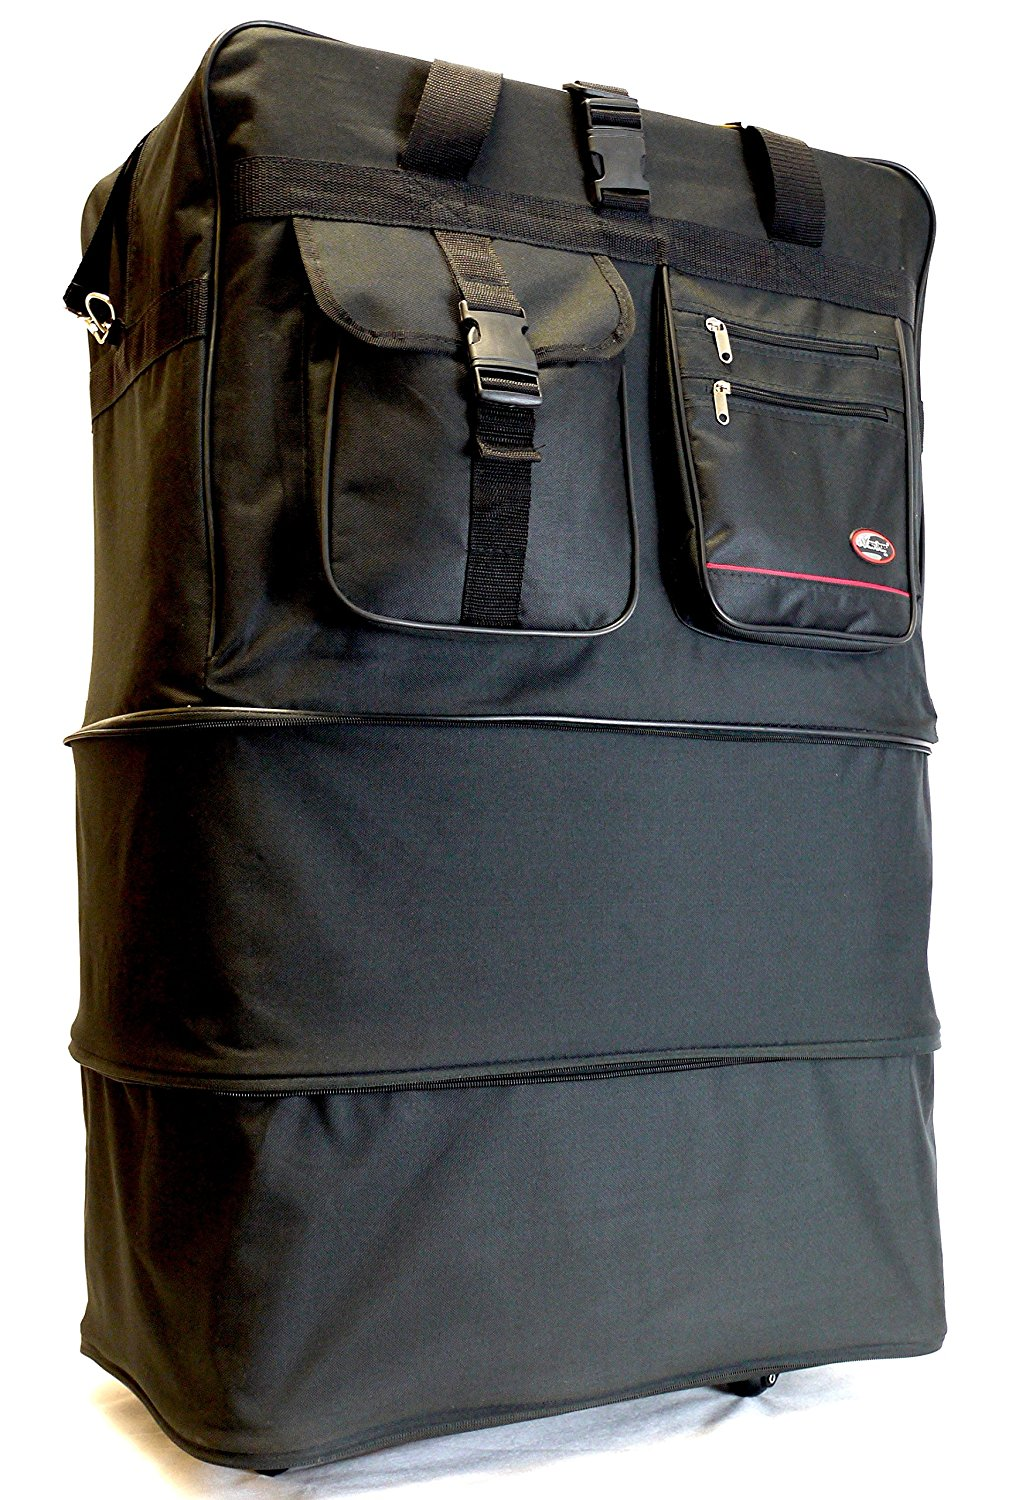 "30"" Rolling Travel 3 Tiers Expandable Wheeled Duffle Bag   Lightweight Spinner Suitcase Luggage by Argo Sport"